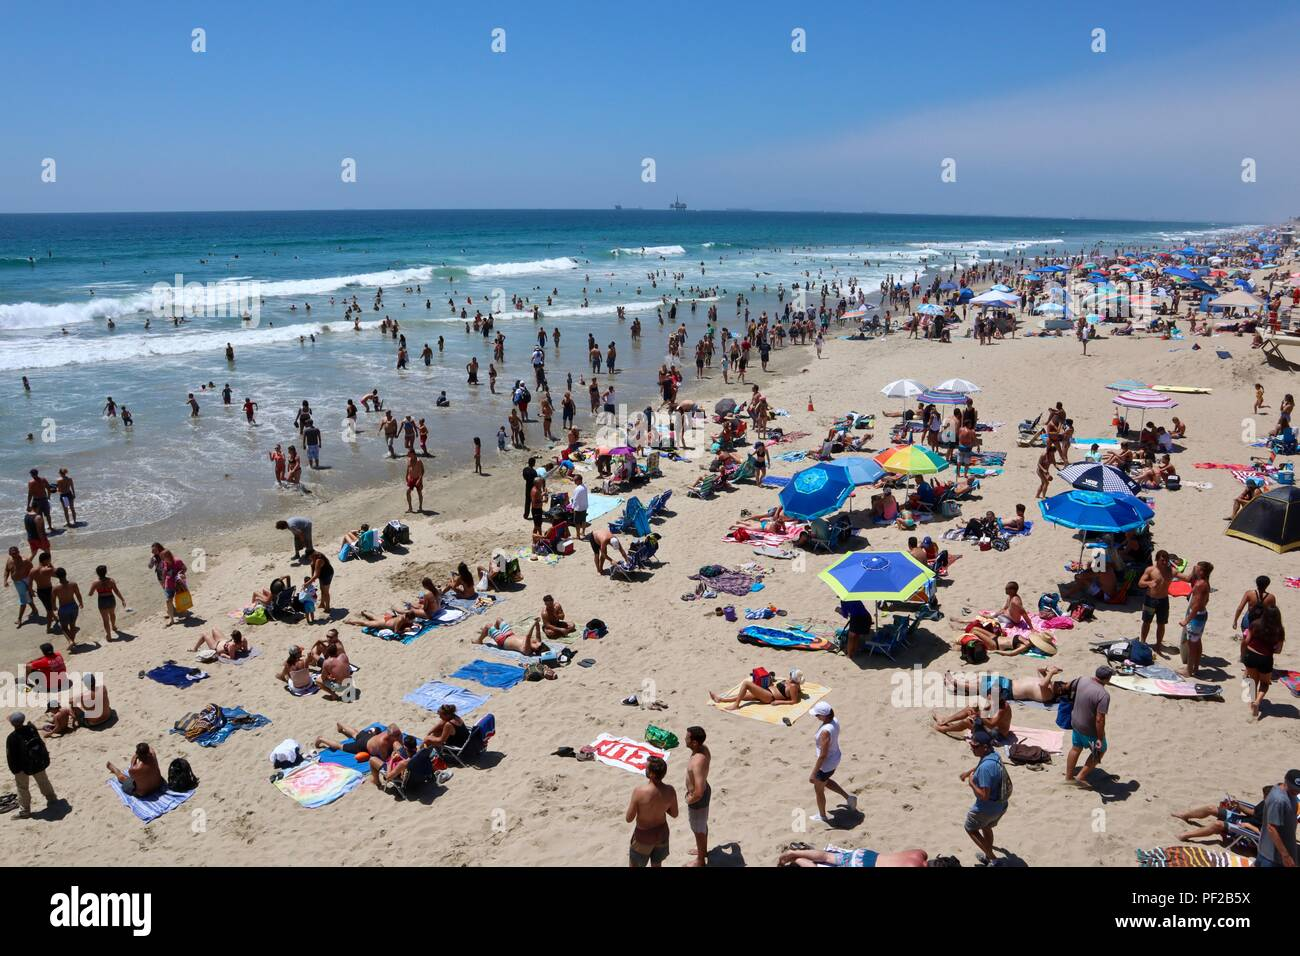 crowded beach during a heat wave in Huntington Beach California - Stock Image